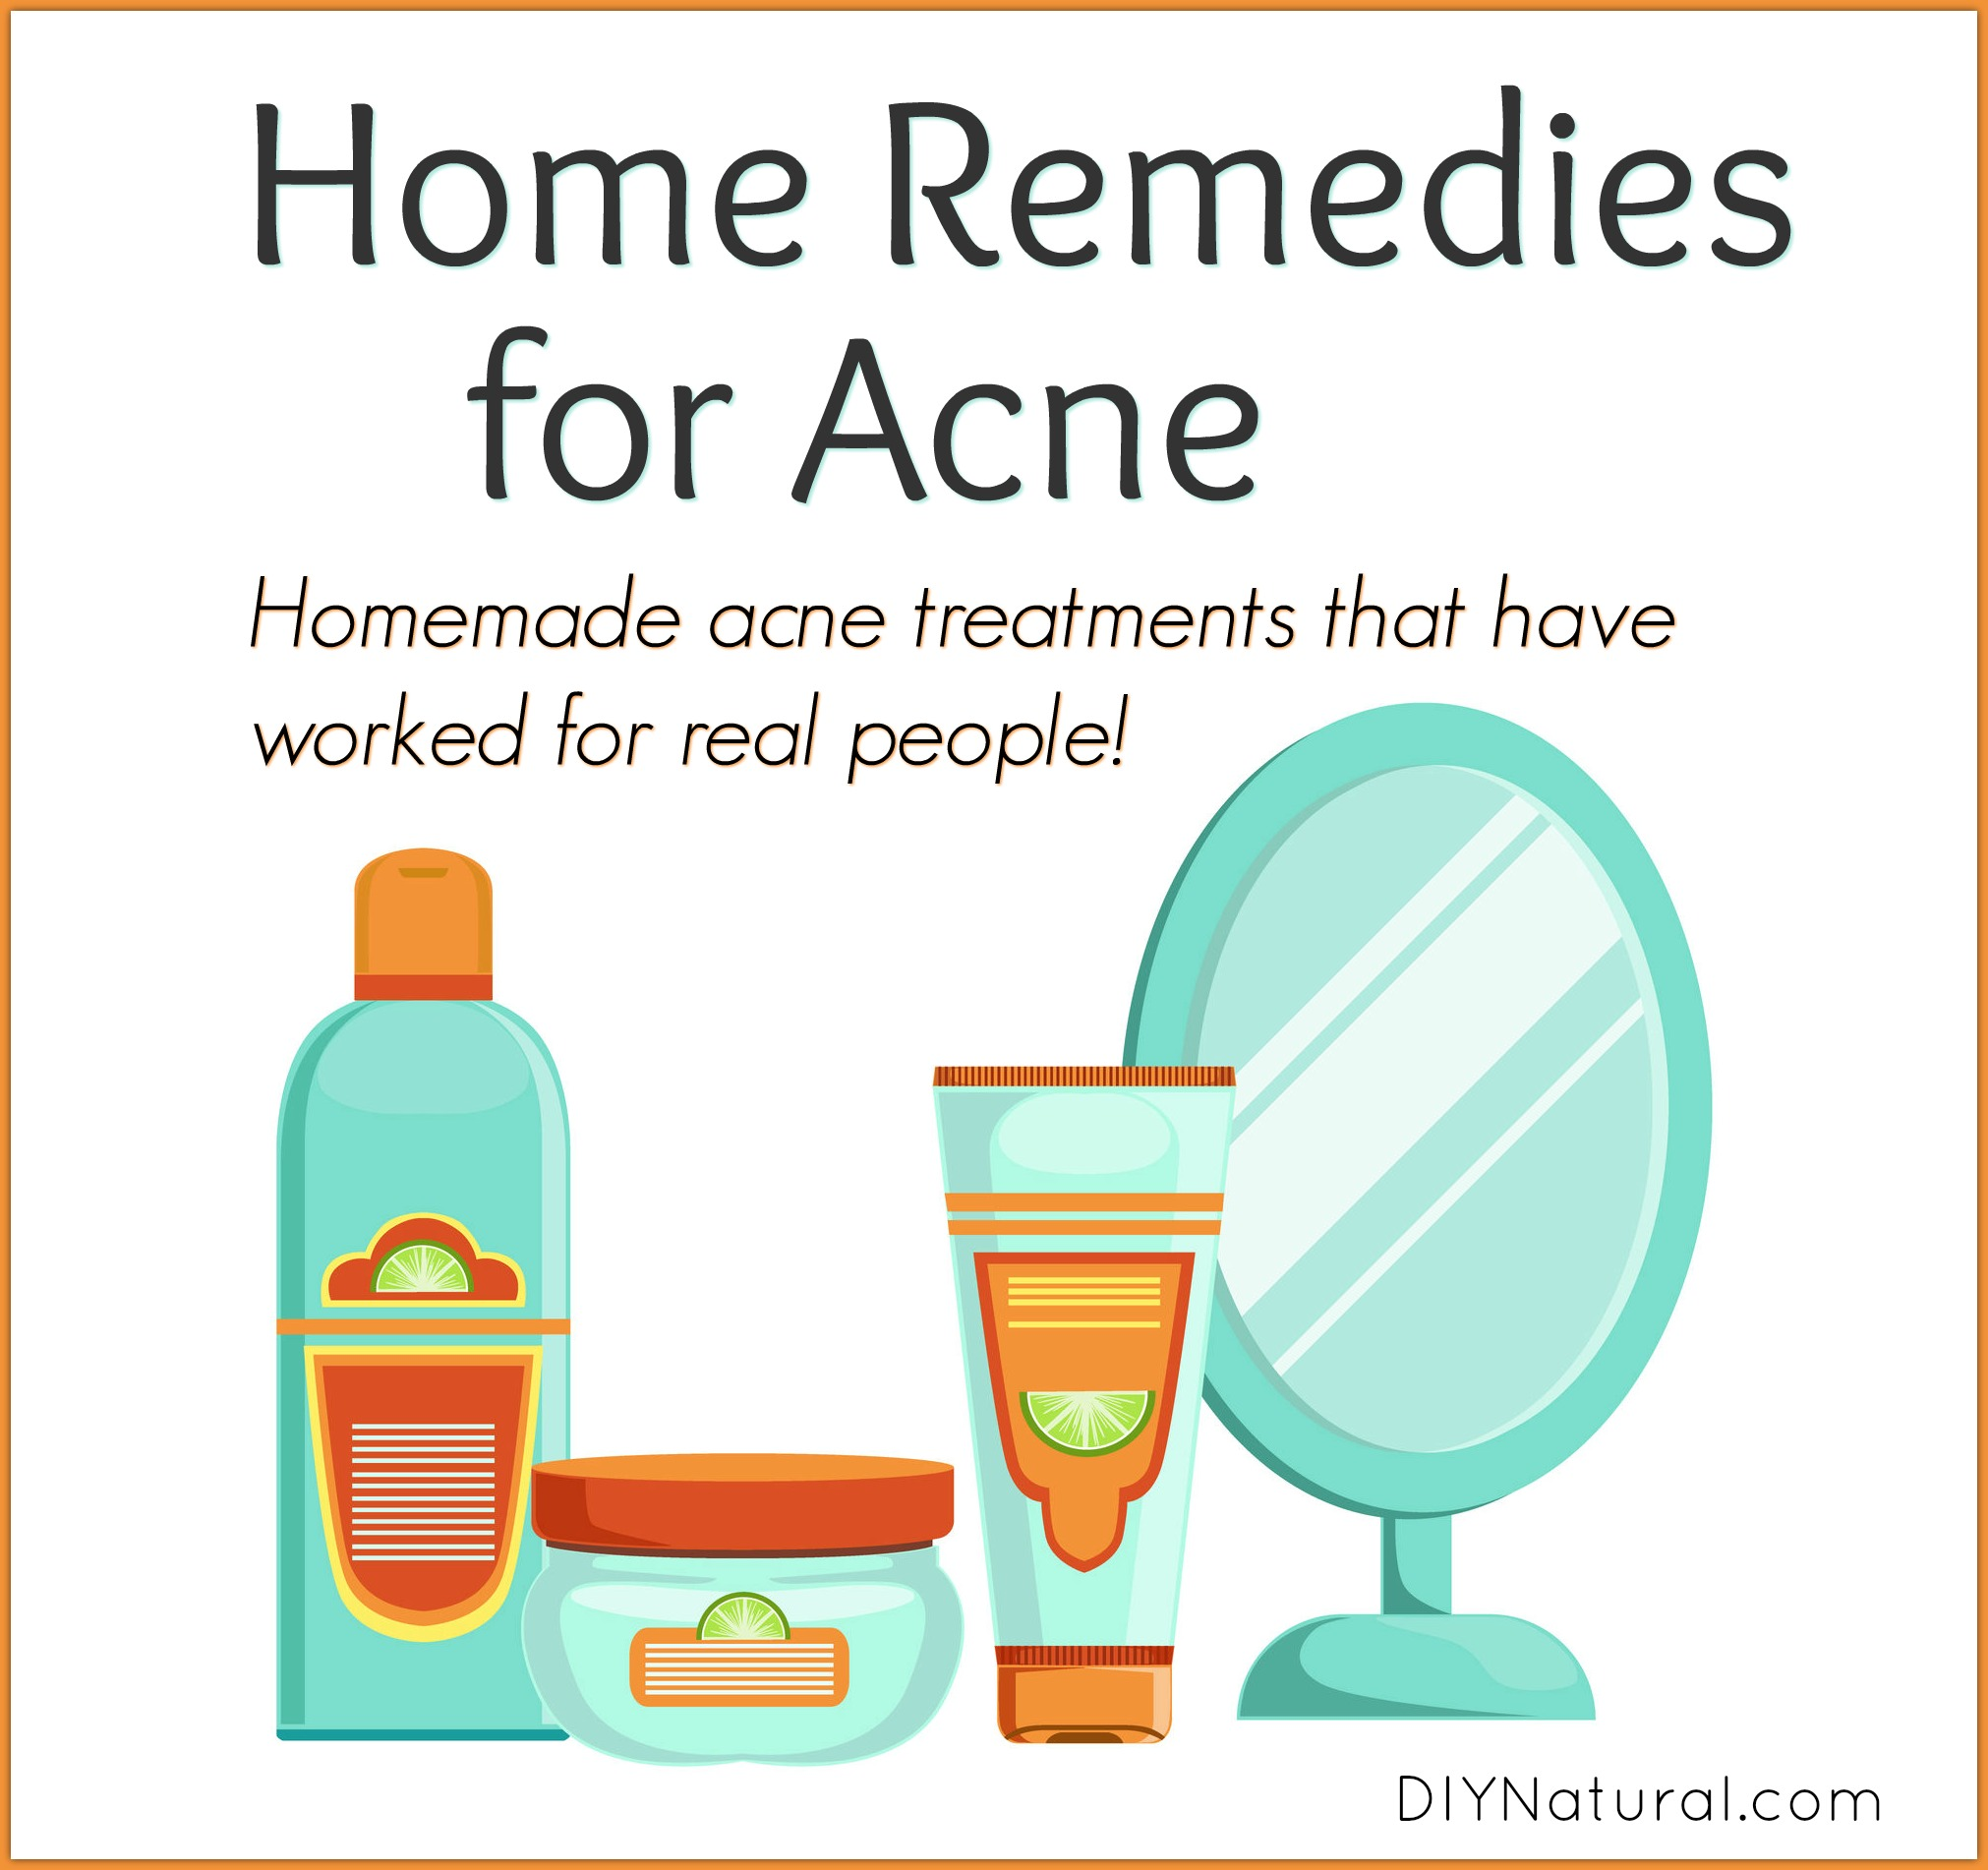 Home Remedies For Acne A Homemade Acne Treatment That Works